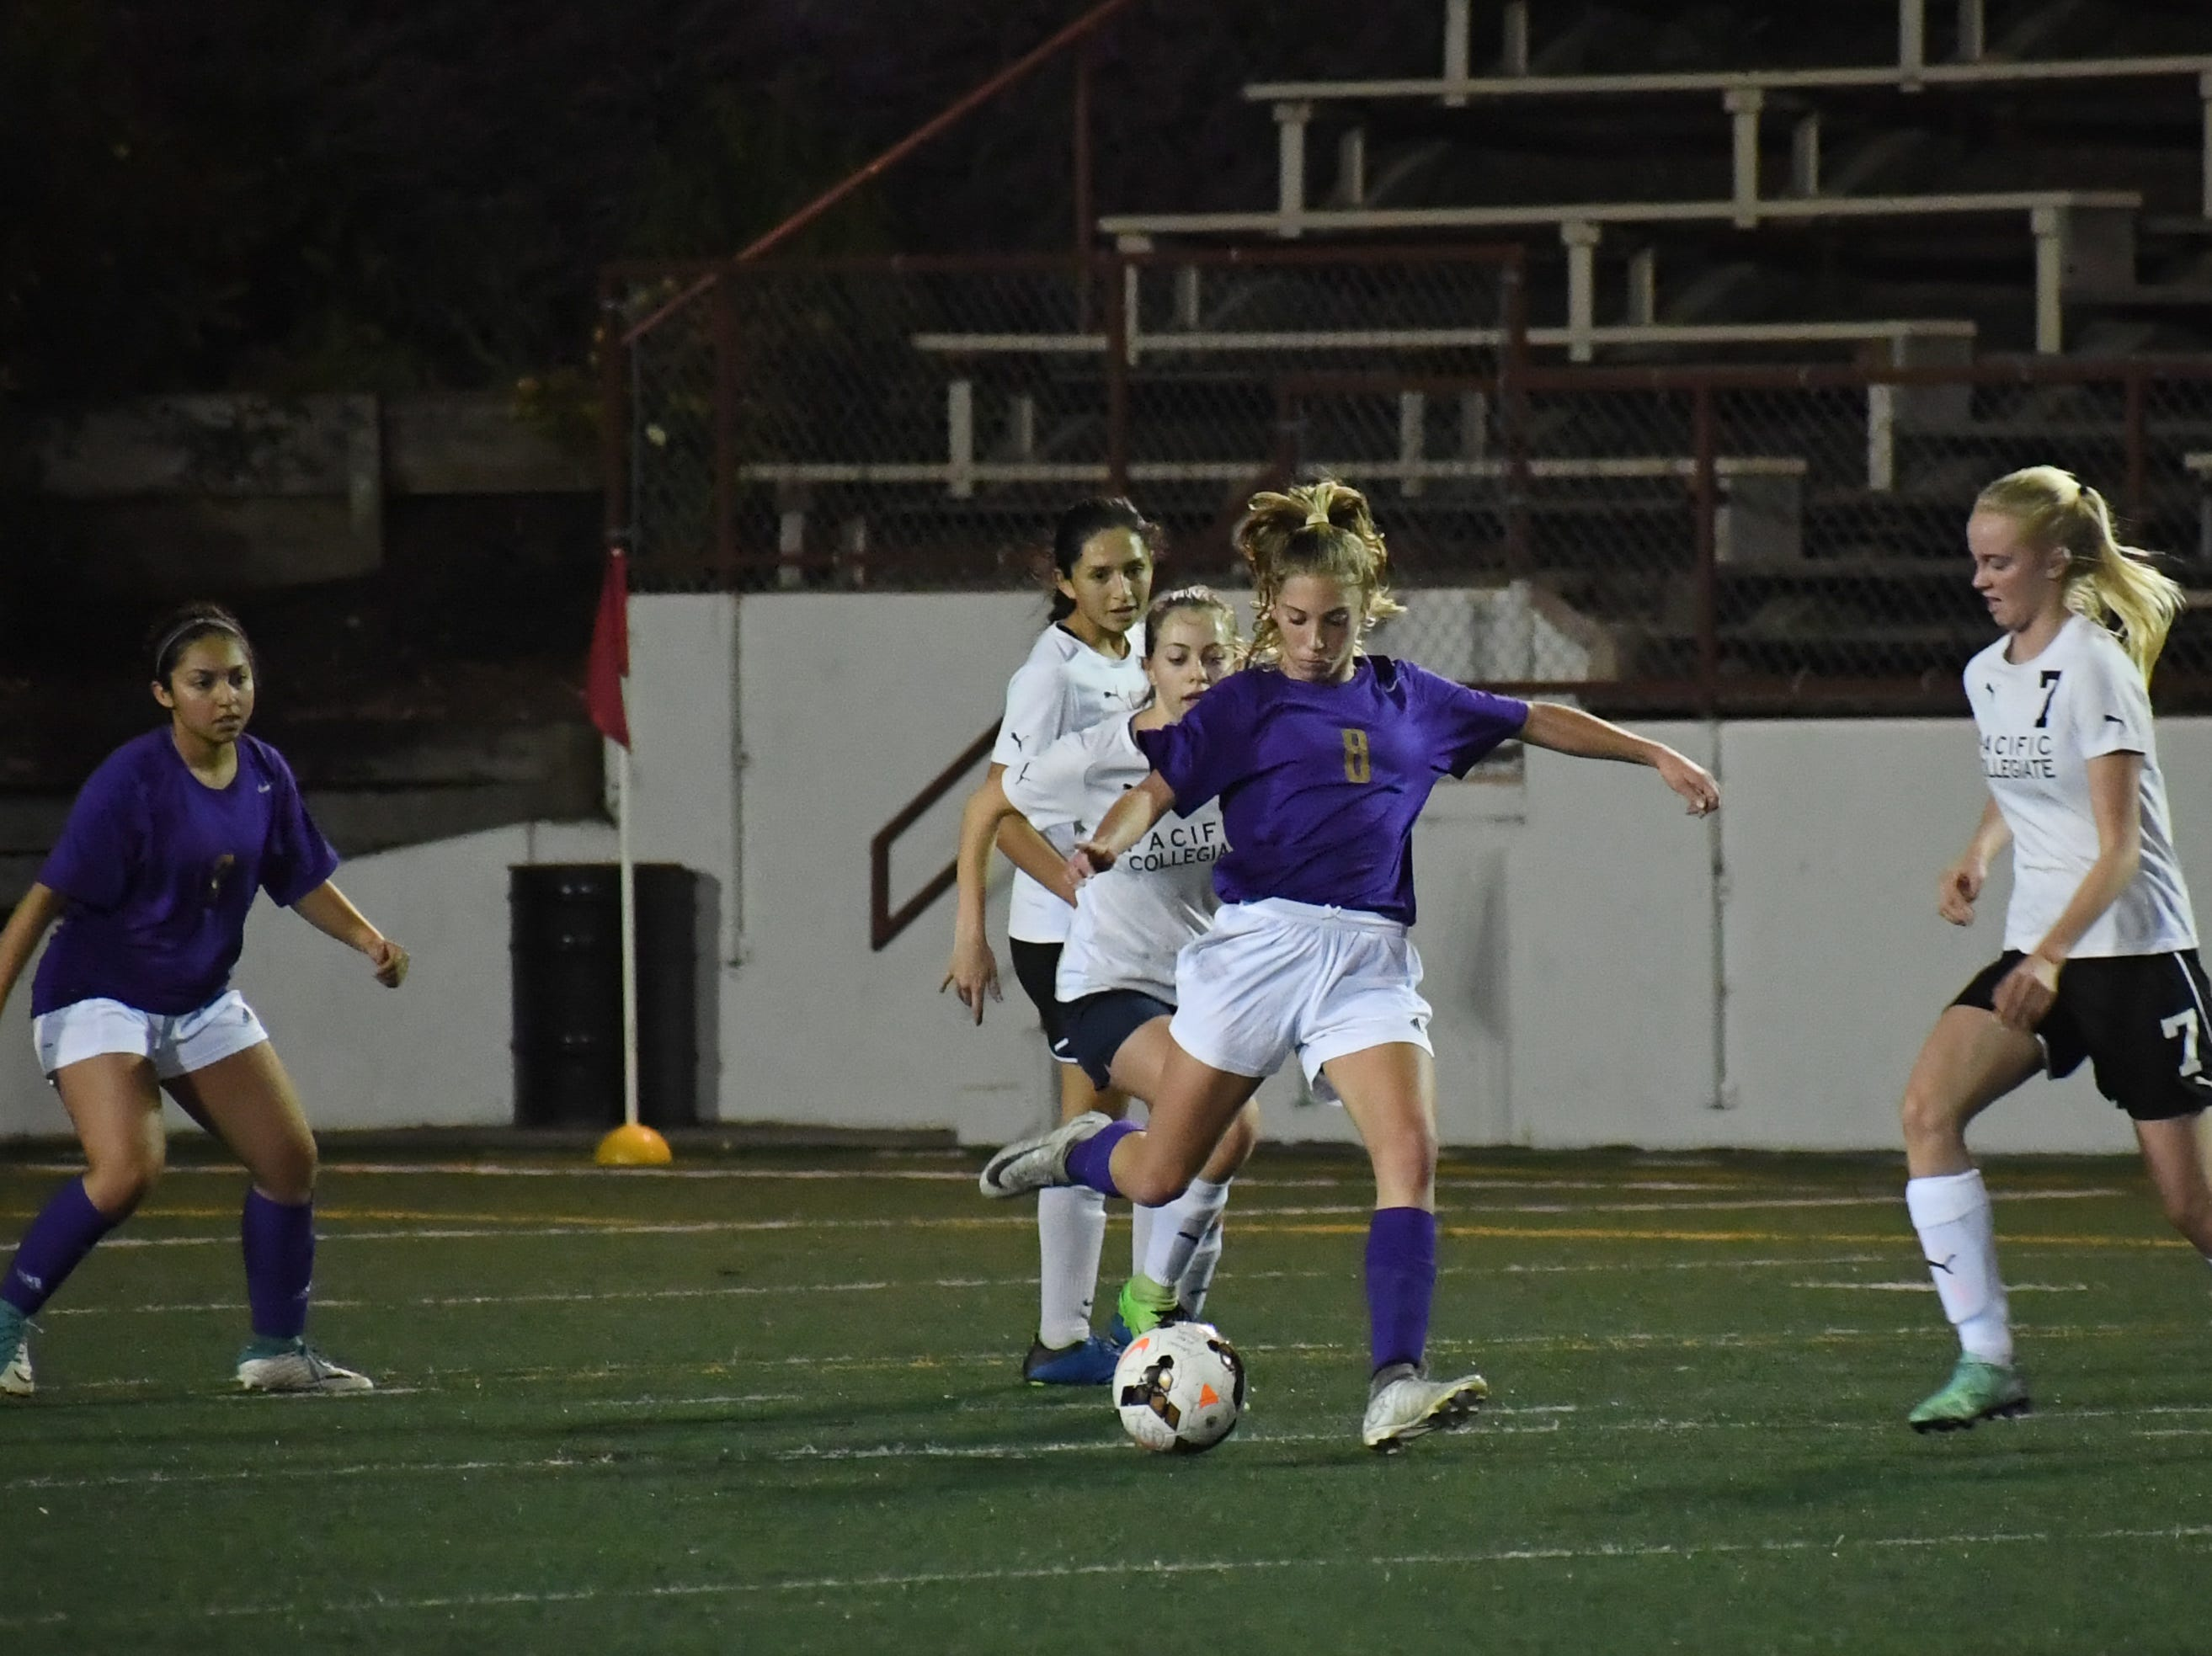 Freshman Taylor Freitas (8) kicks the ball downfield to stop a counterattack.